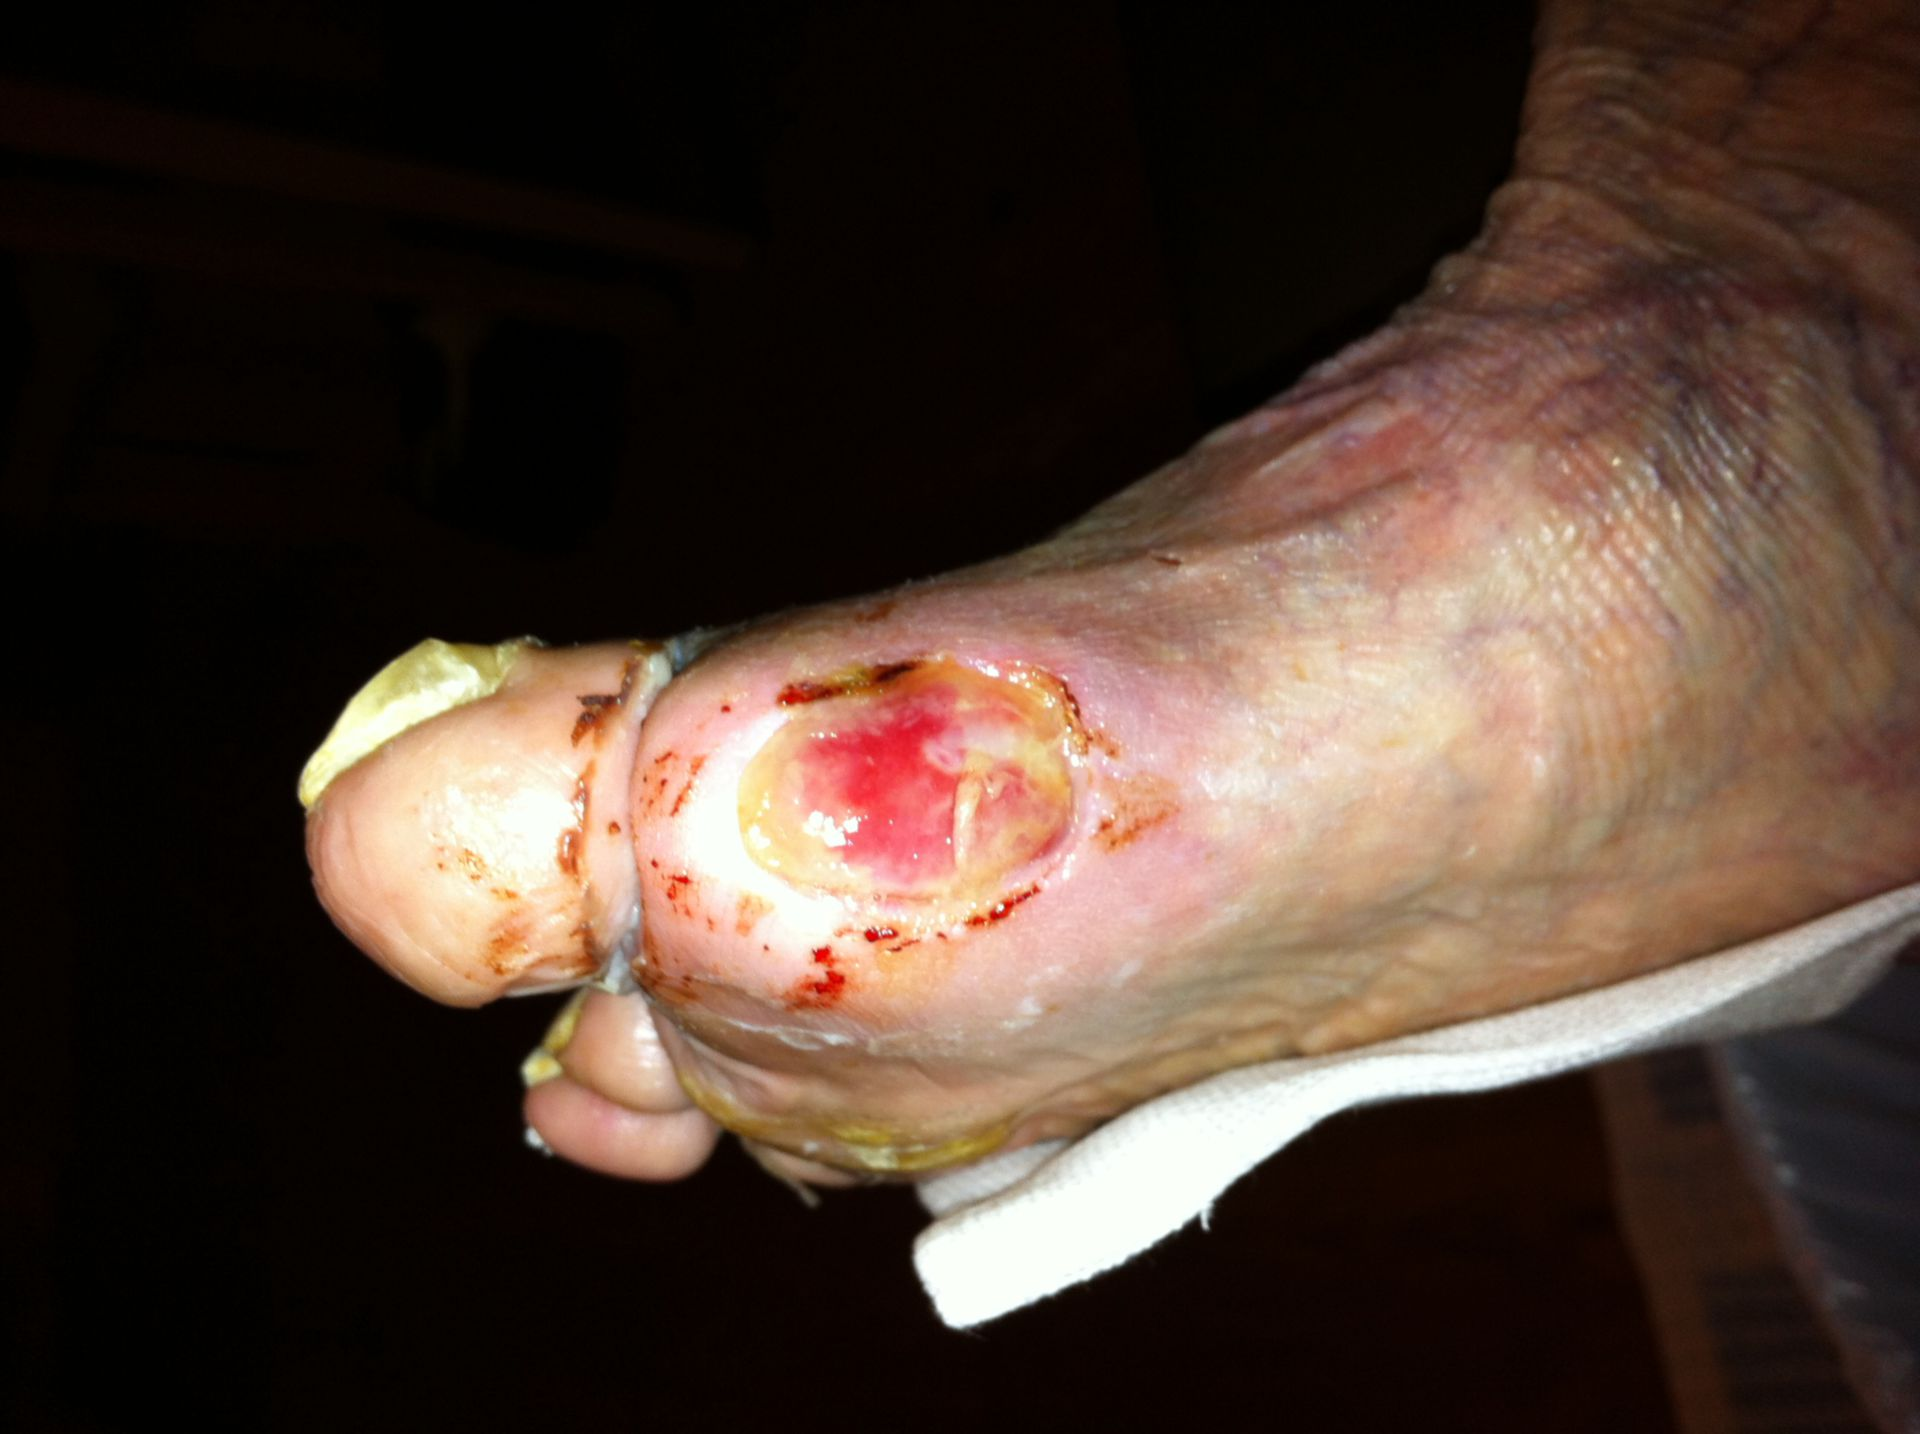 Diabetic foot syndrom